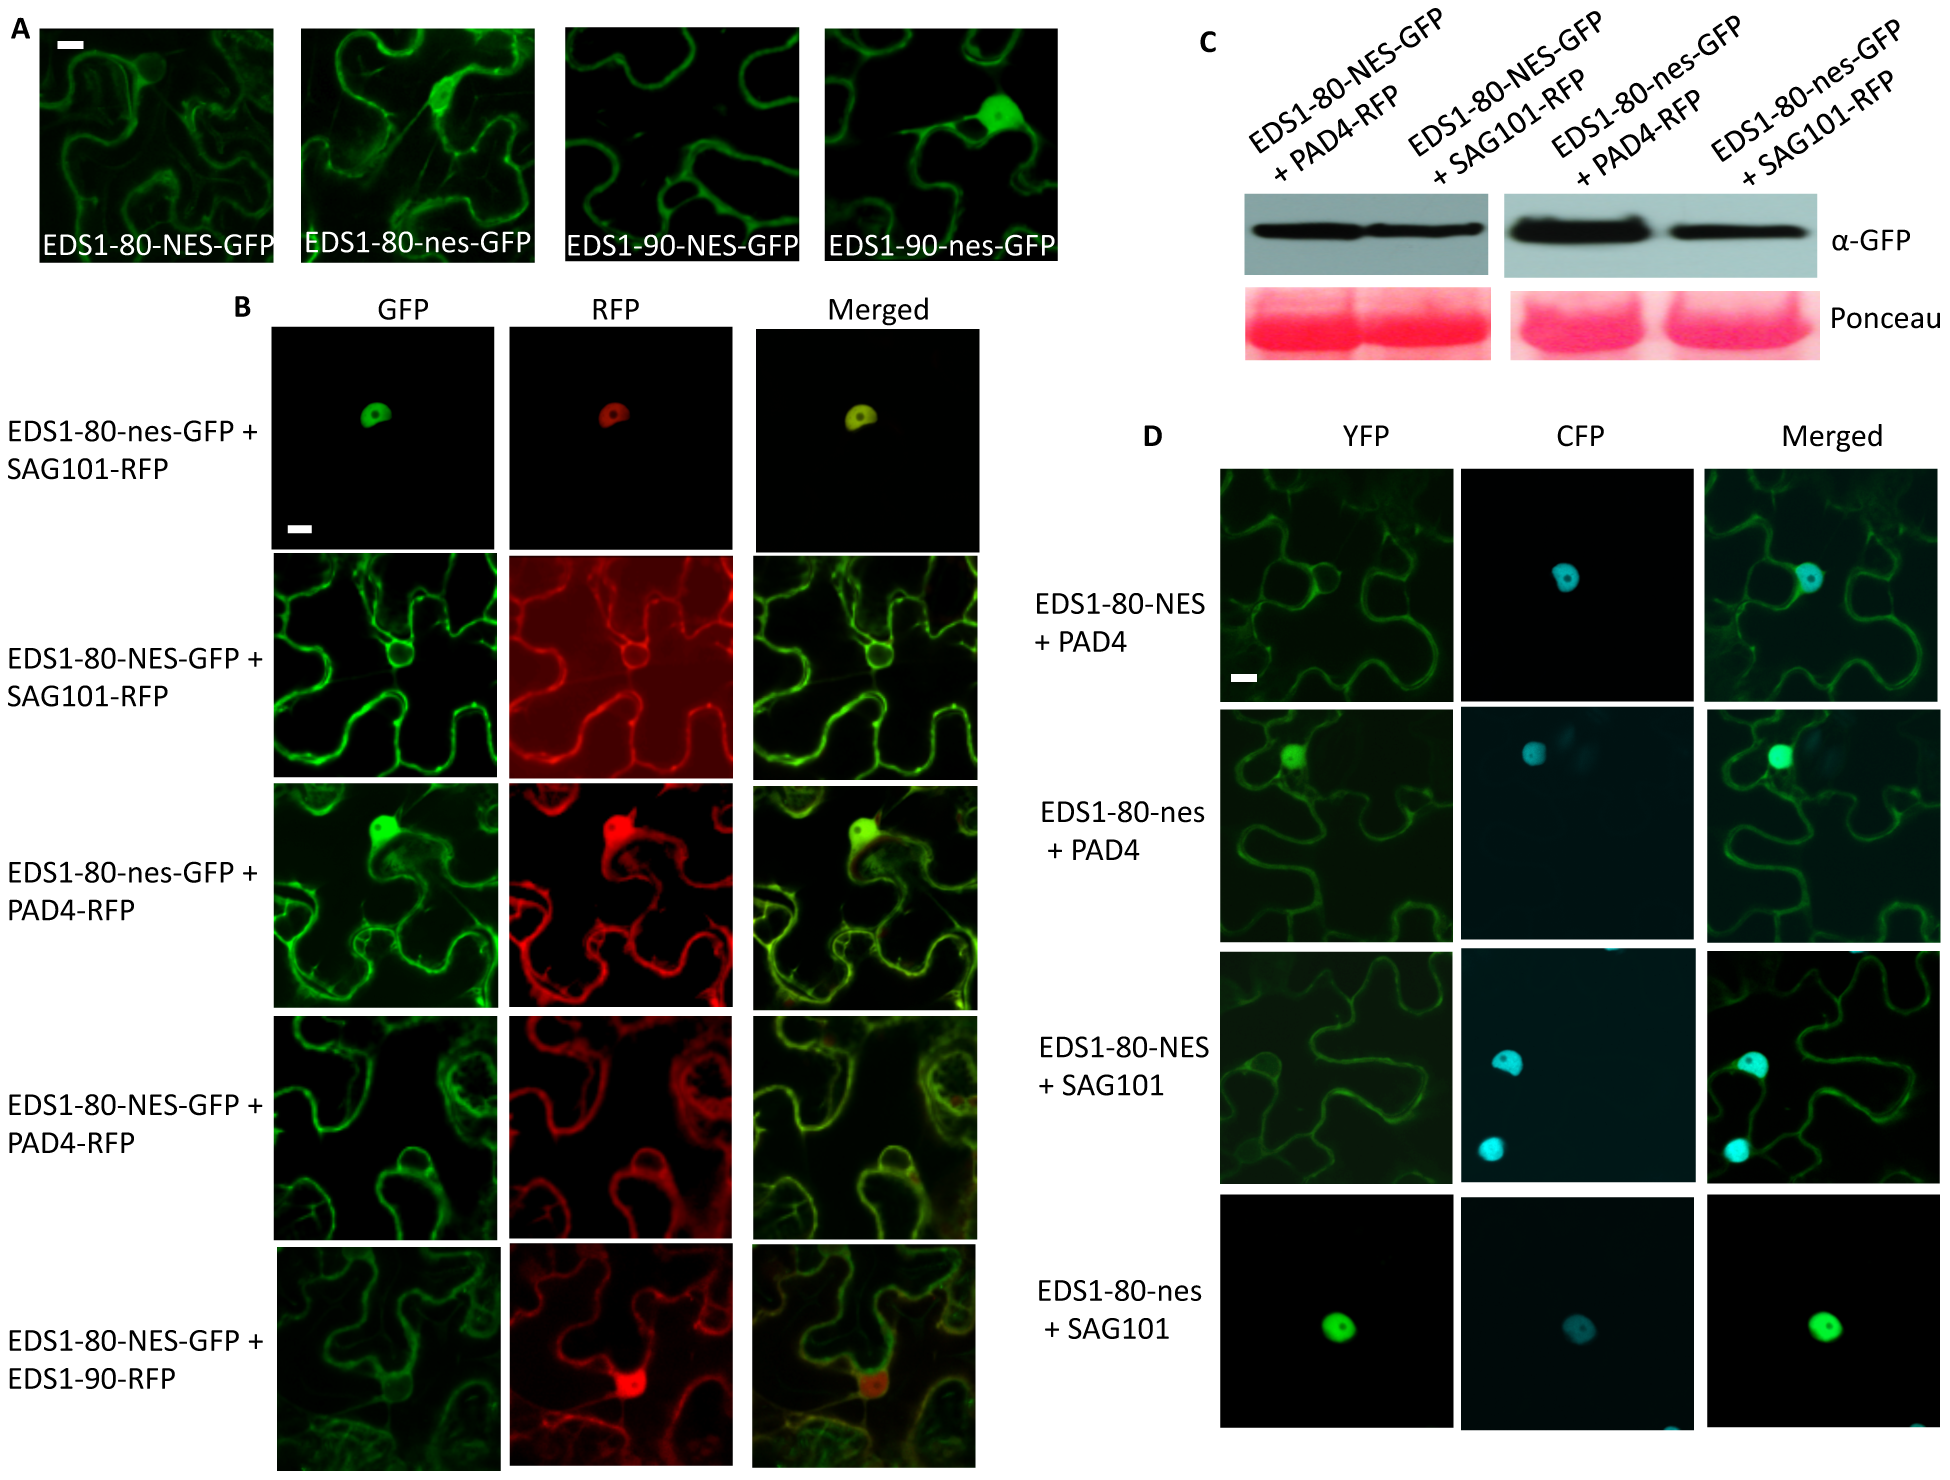 EDS1-NES exhibits extranuclear interaction with SAG101.